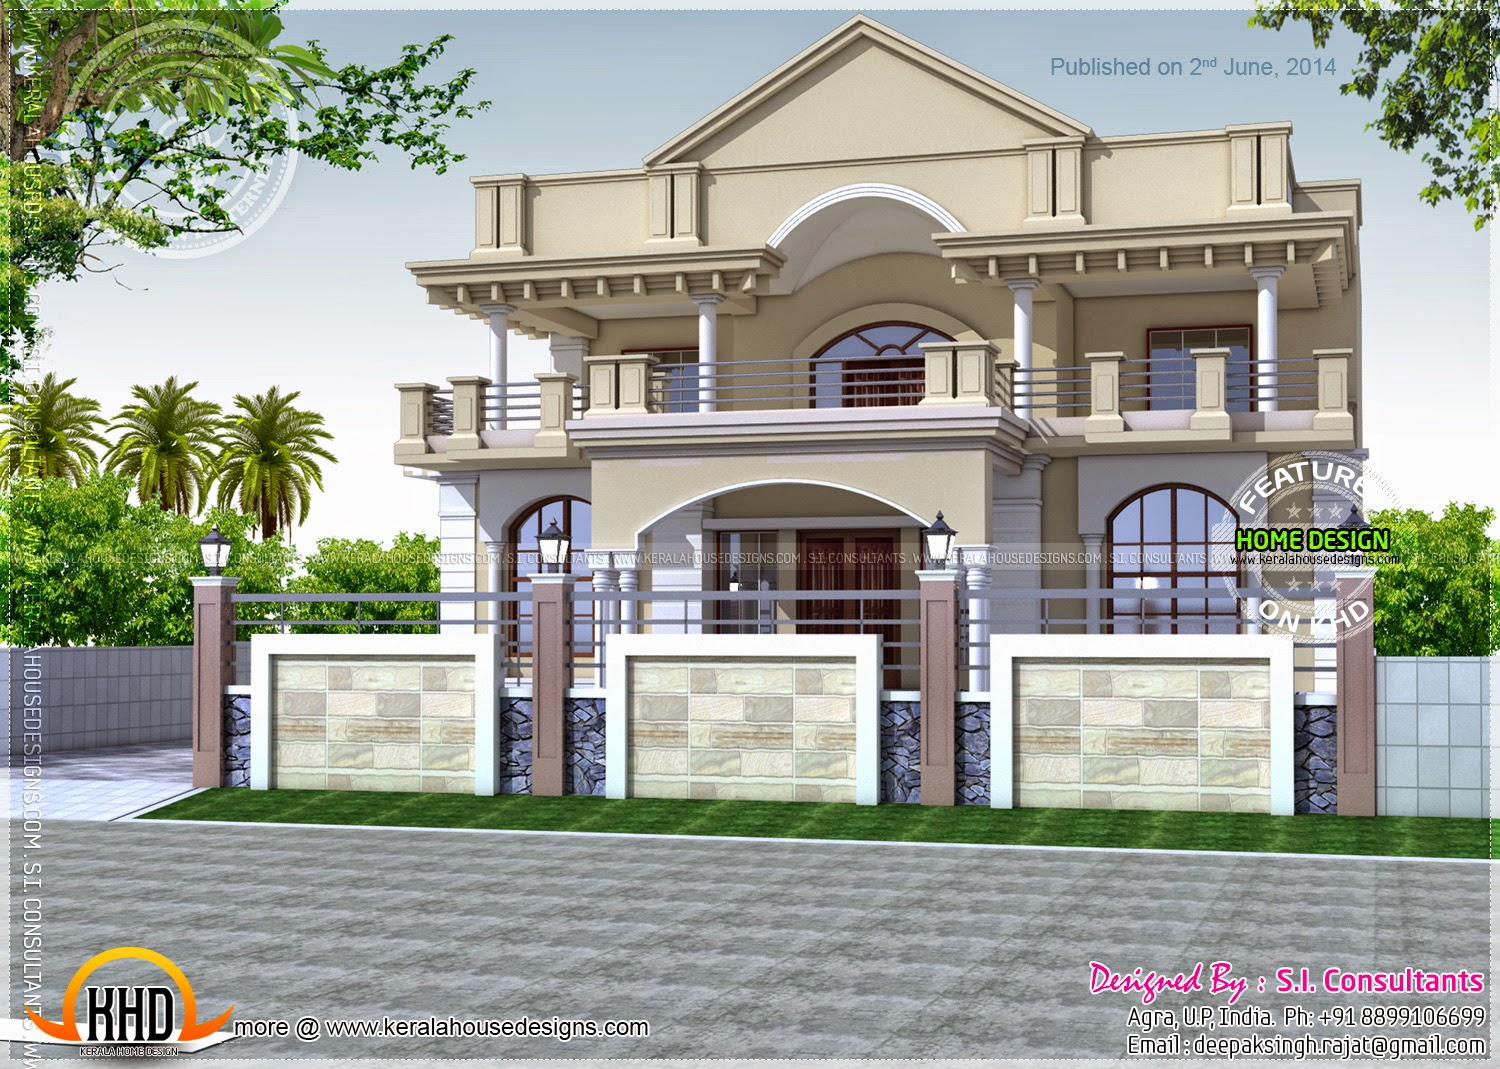 North Indian exterior house - Kerala home design and floor plans